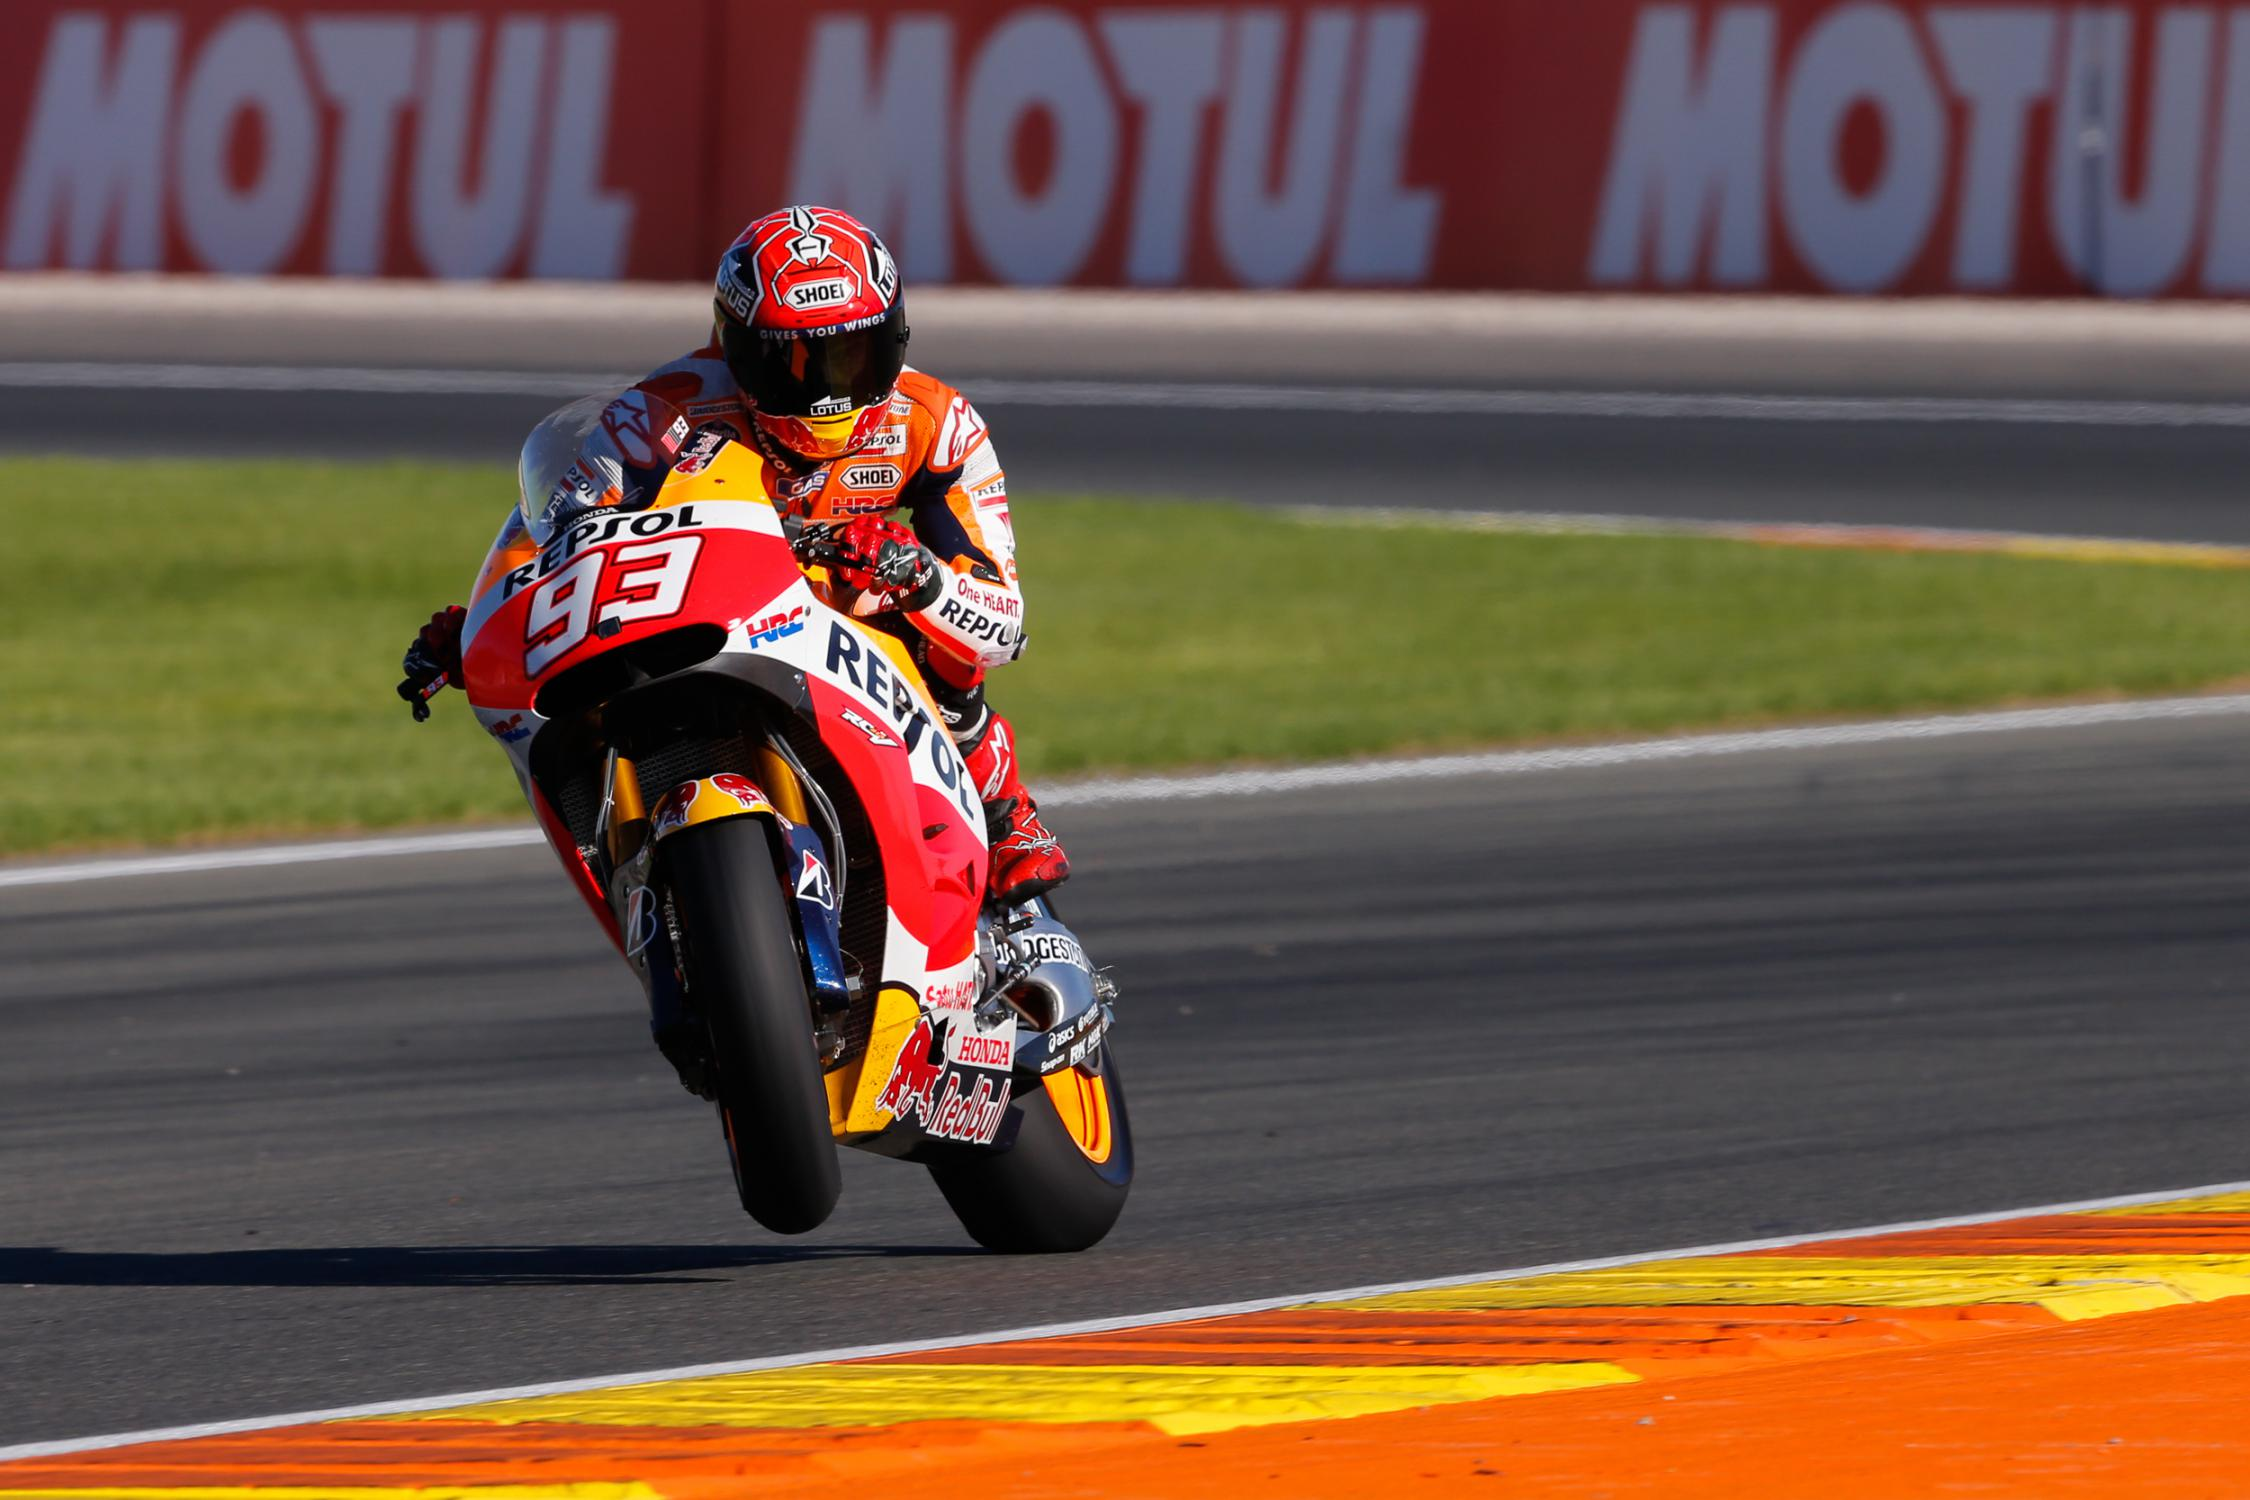 [GP] Valencia 93-marquez_gp_4169.gallery_full_top_fullscreen